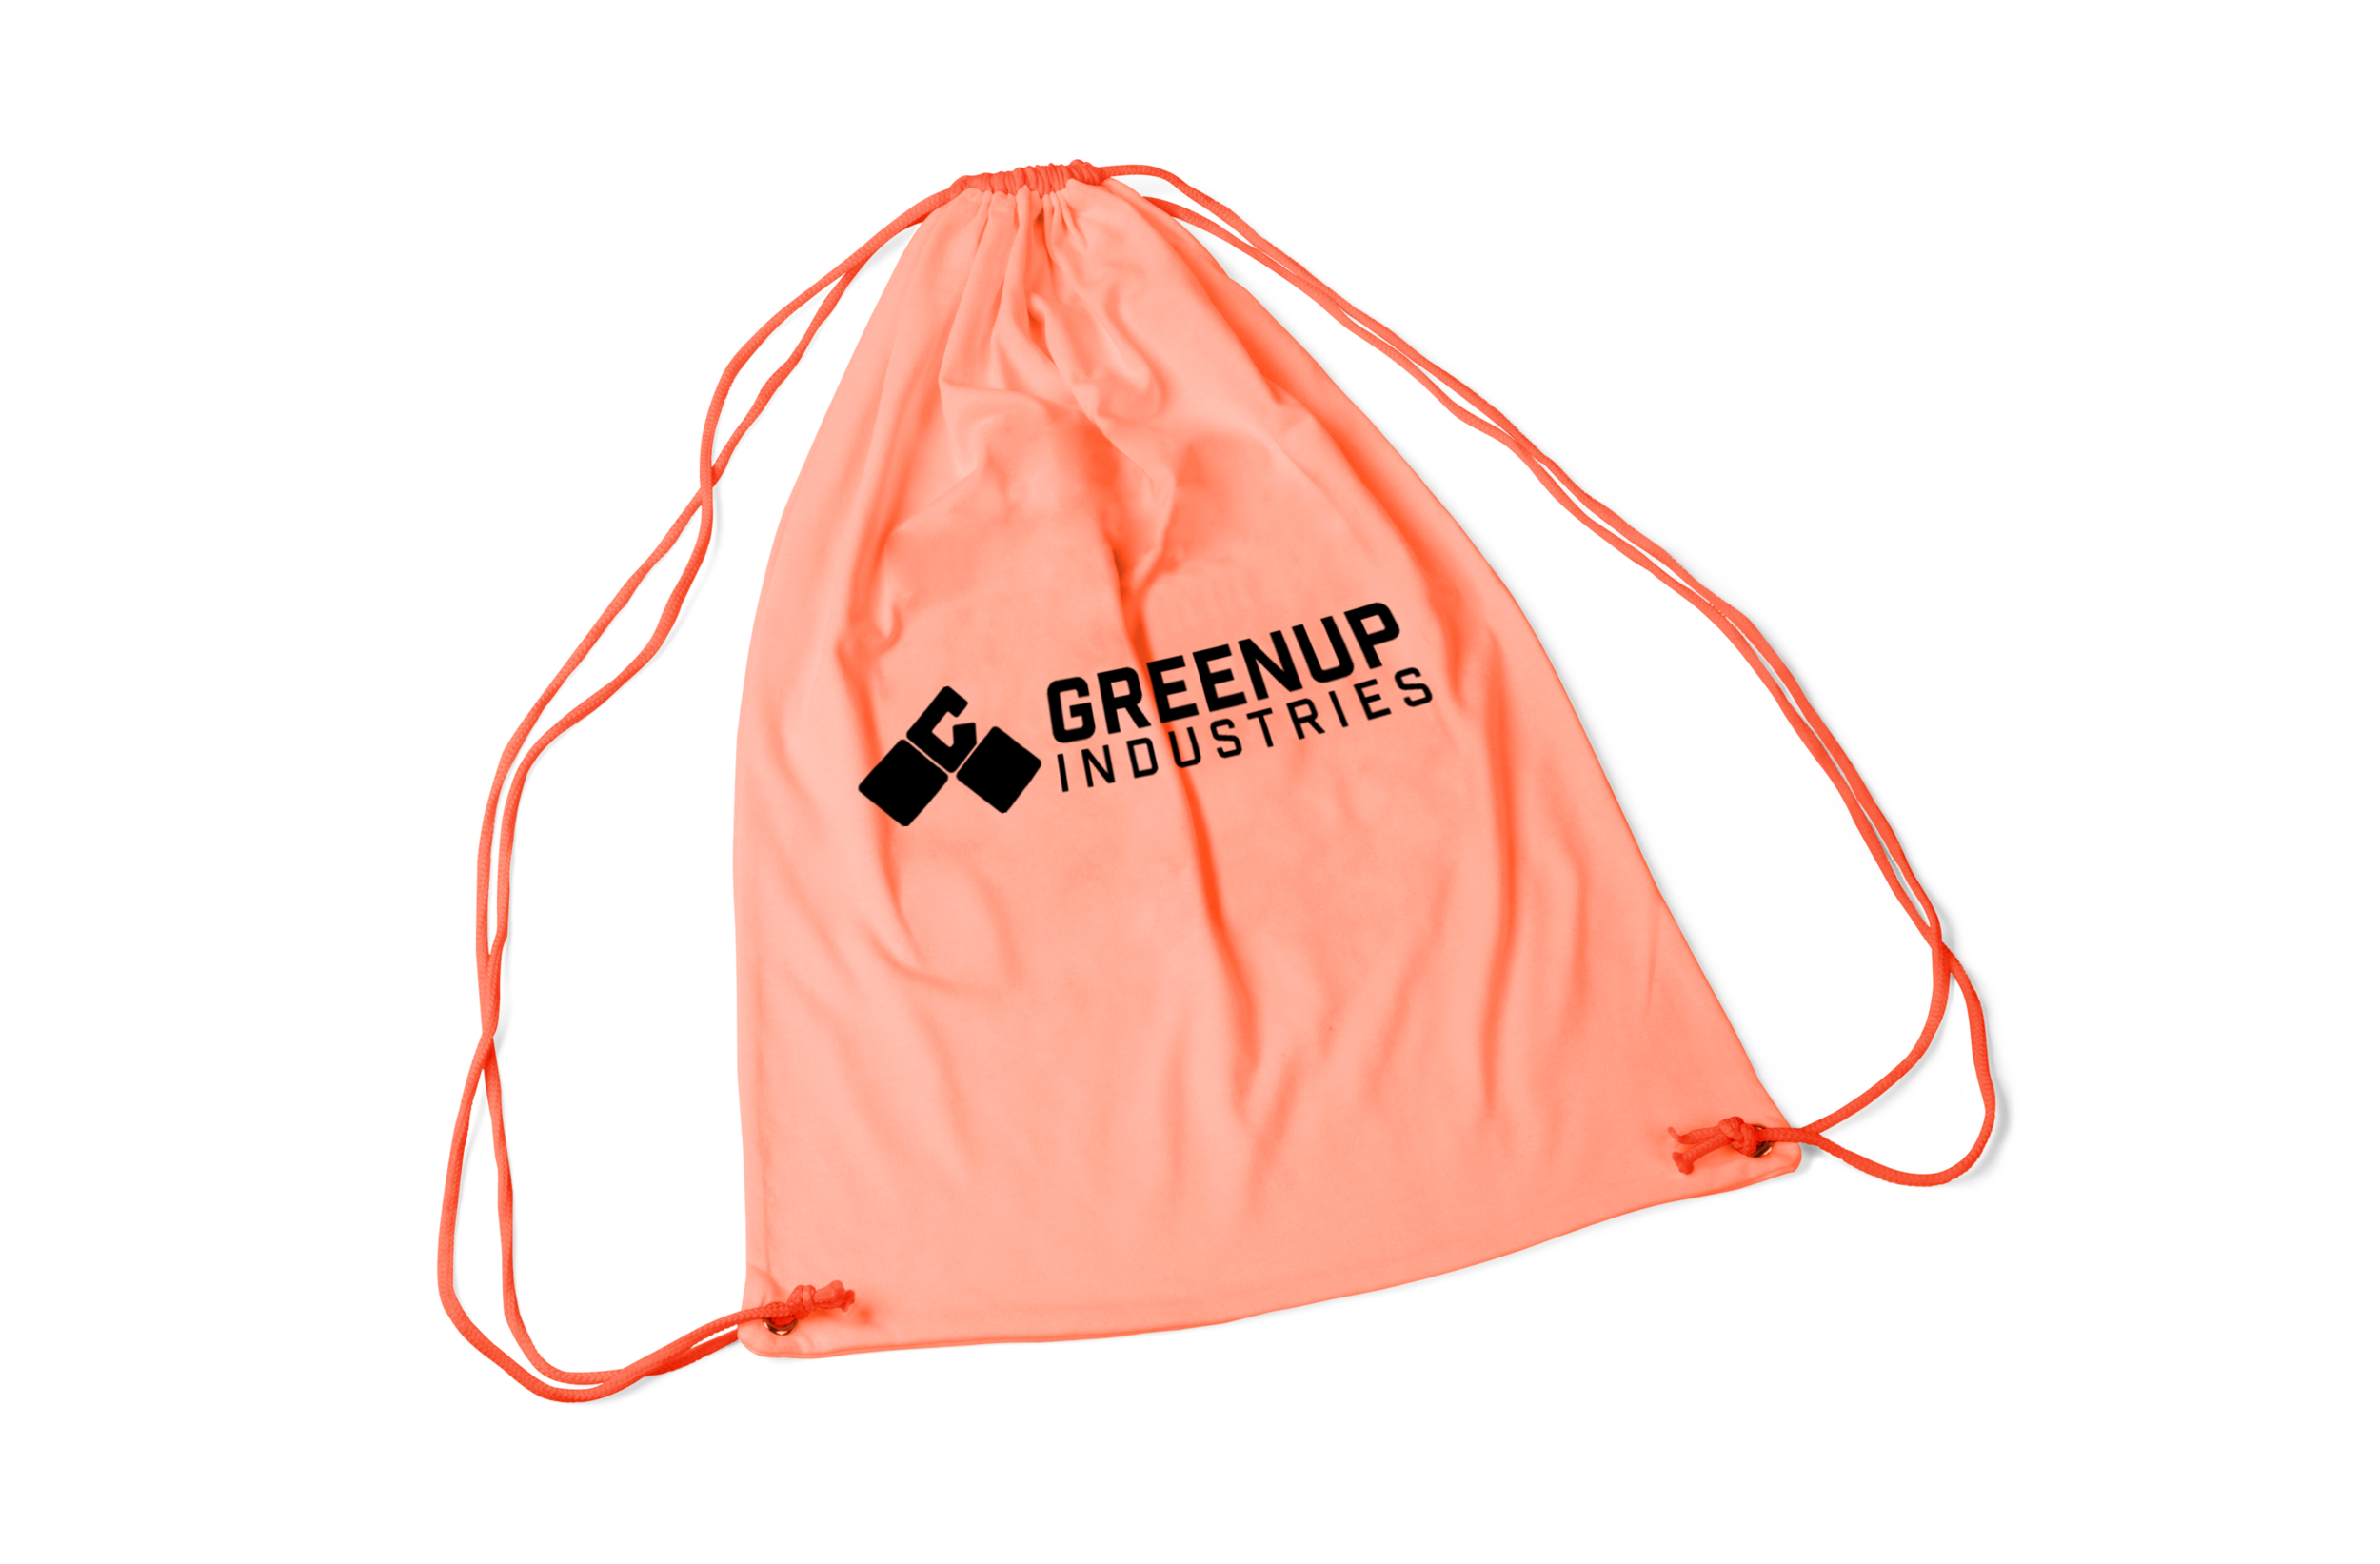 orange-drawstring-bag-mockup.png